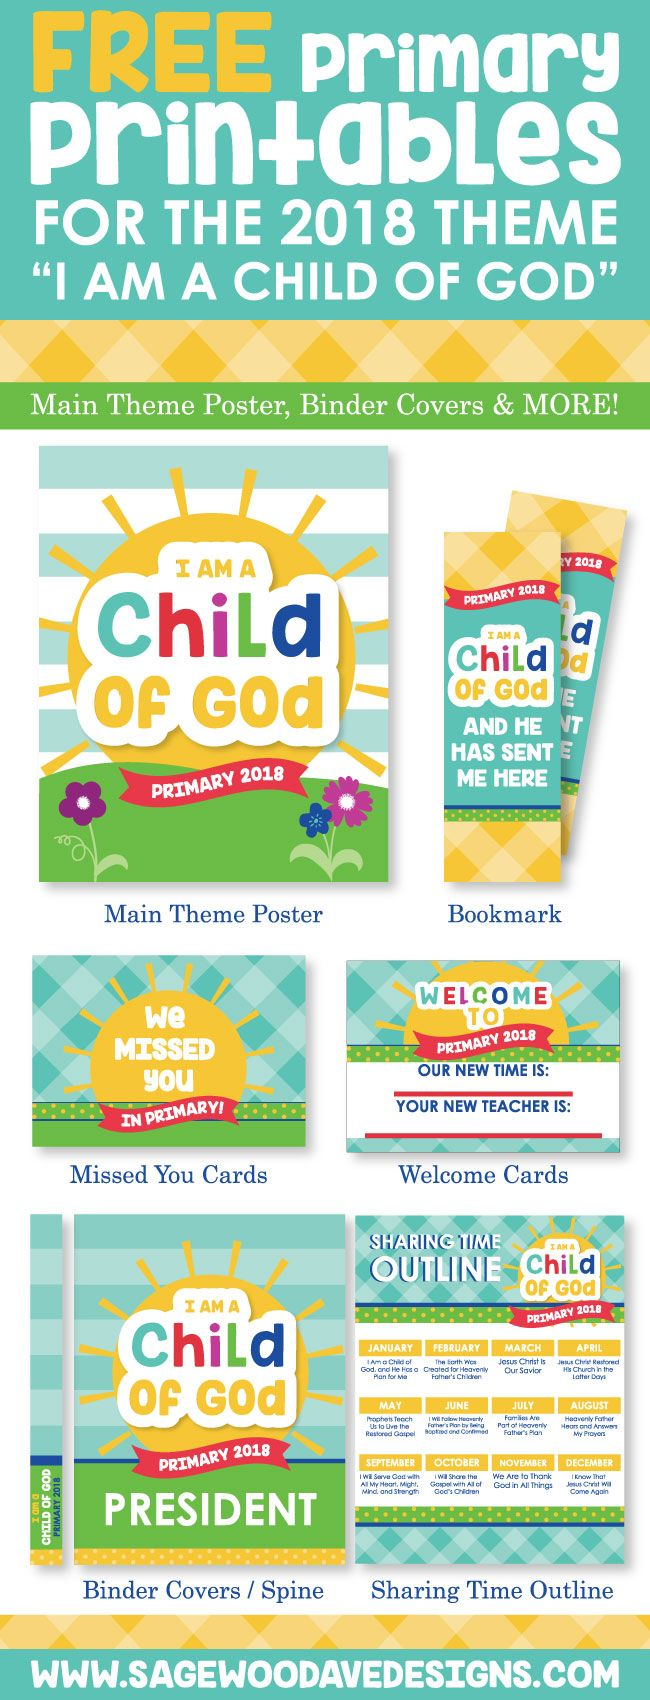 FREE 2018 Lds Primary Printables! Main Theme Poster, Binder Covers and More!